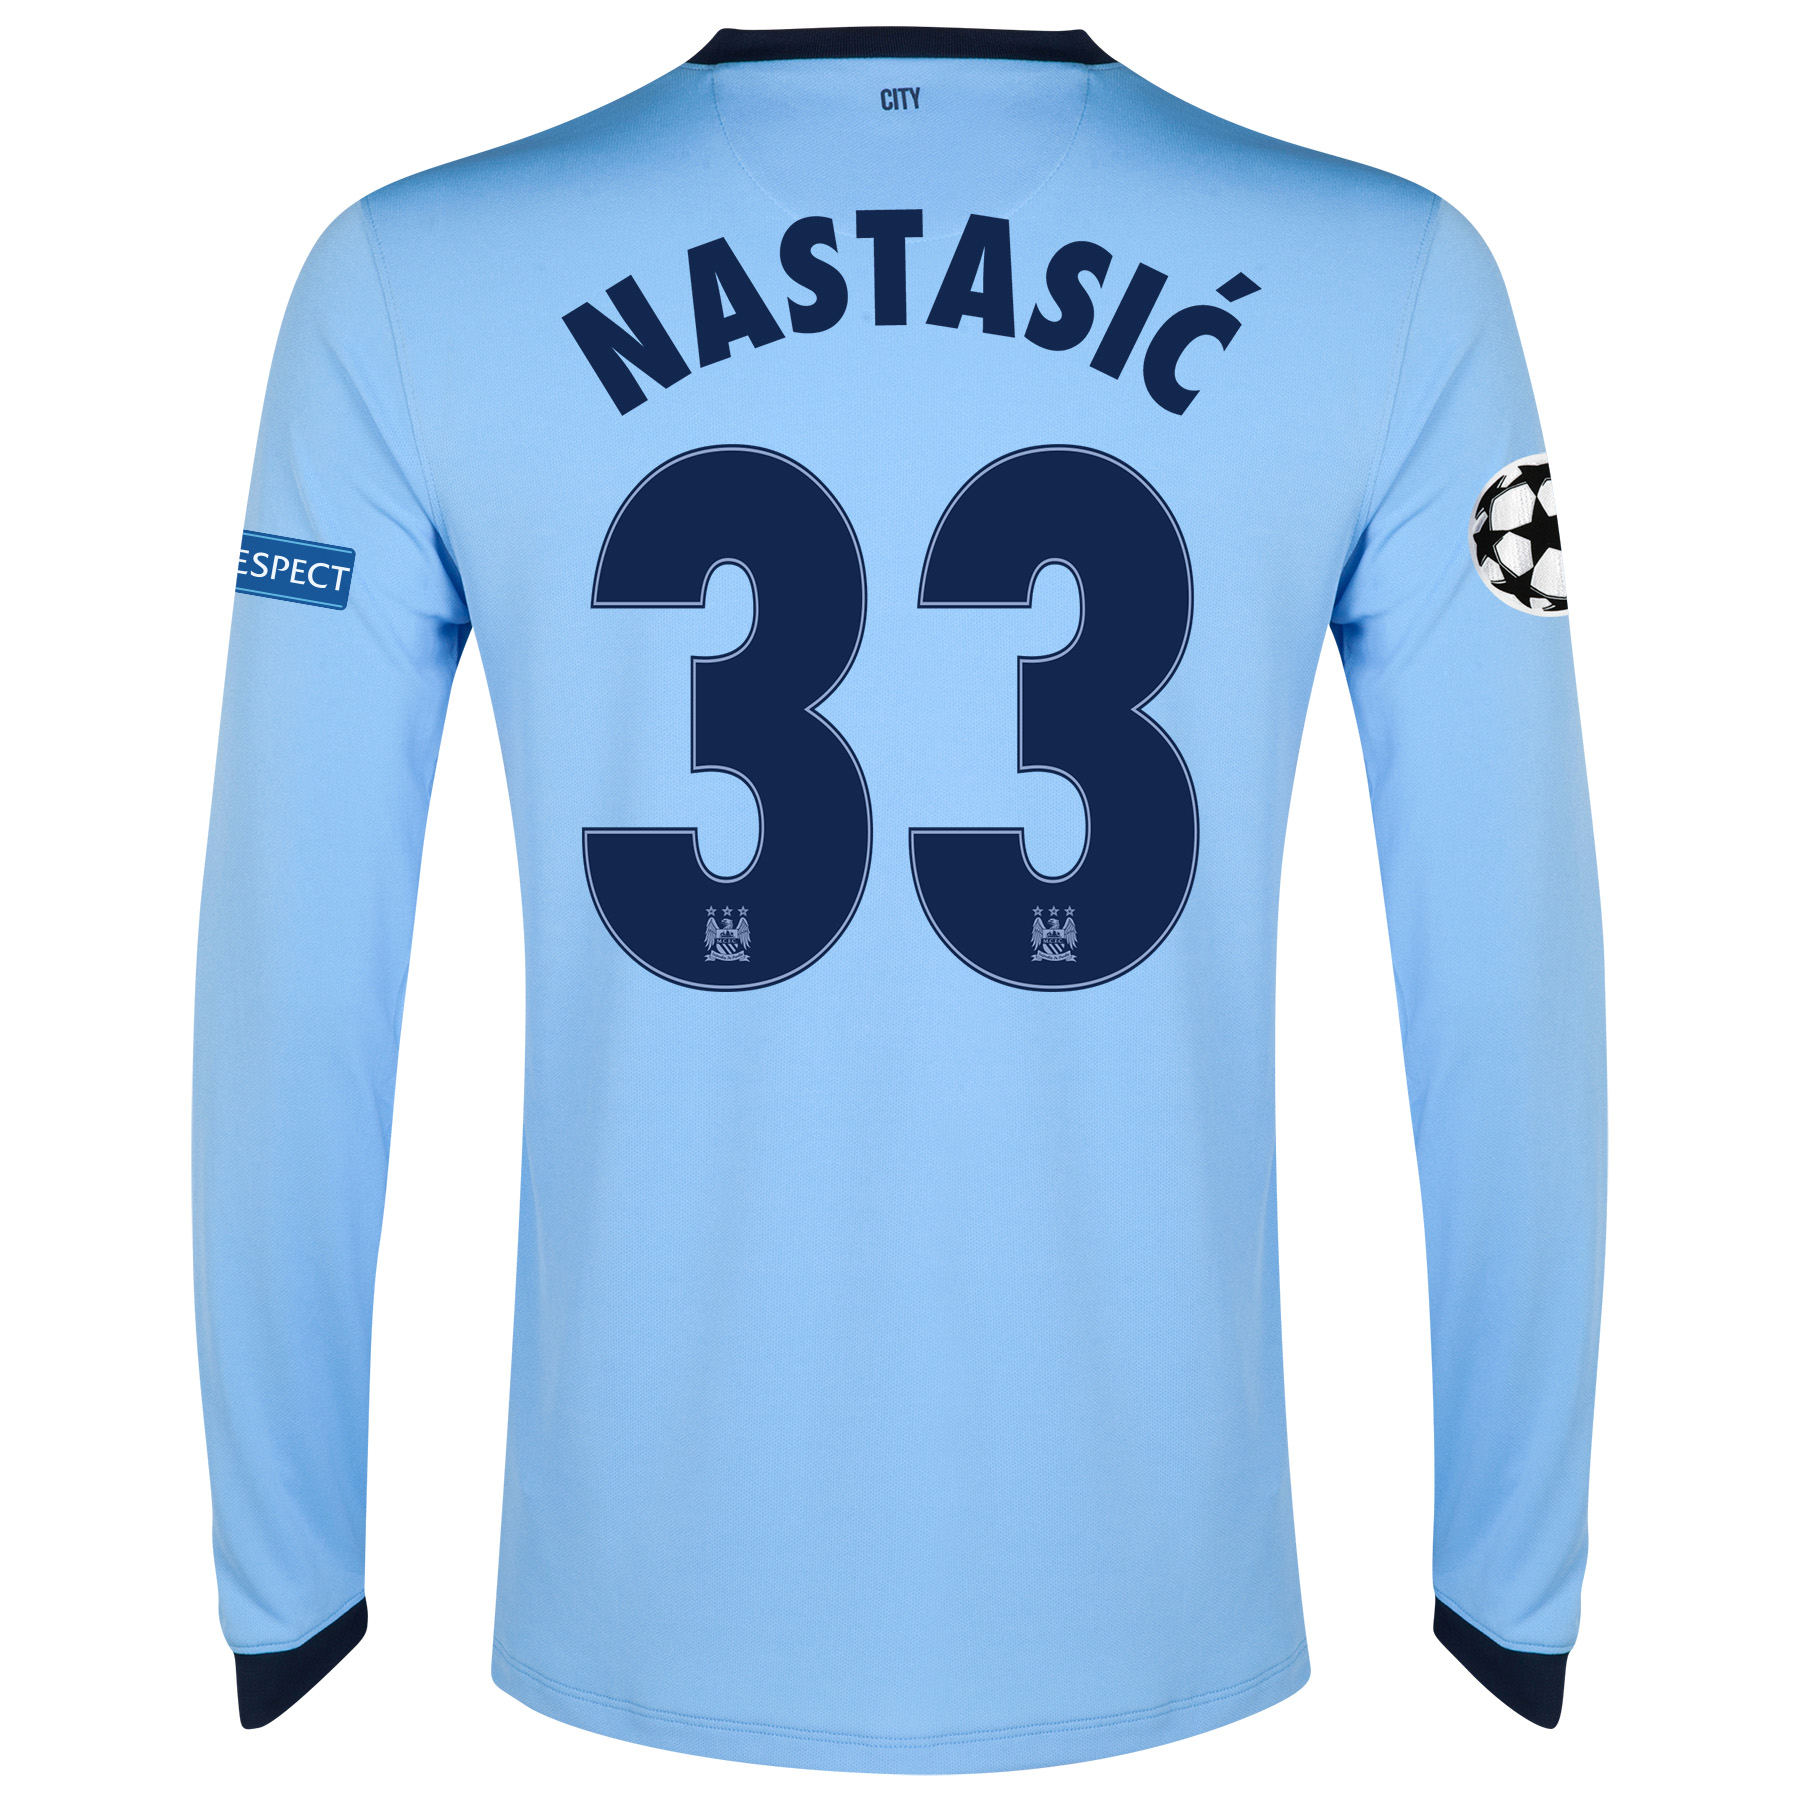 Manchester City UEFA Champions League Home Shirt 2014/15 - Long Sleeve - Kids Sky Blue with Nastasic 33 printing